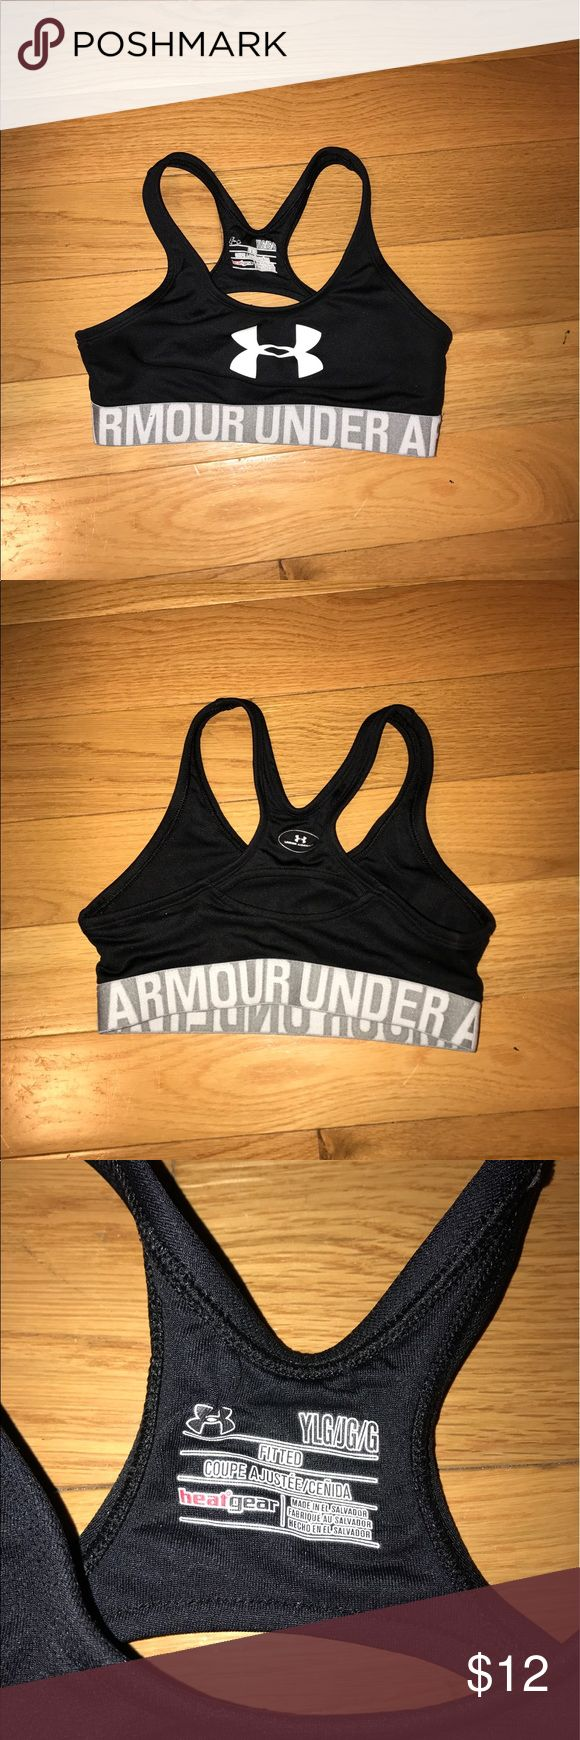 Girls Black Under Armour Sports Bra Black and grey under armour sports bra for kids! Never worn or washed, just tried on. Doesn't fit me! Under Armour Shirts & Tops Tank Tops